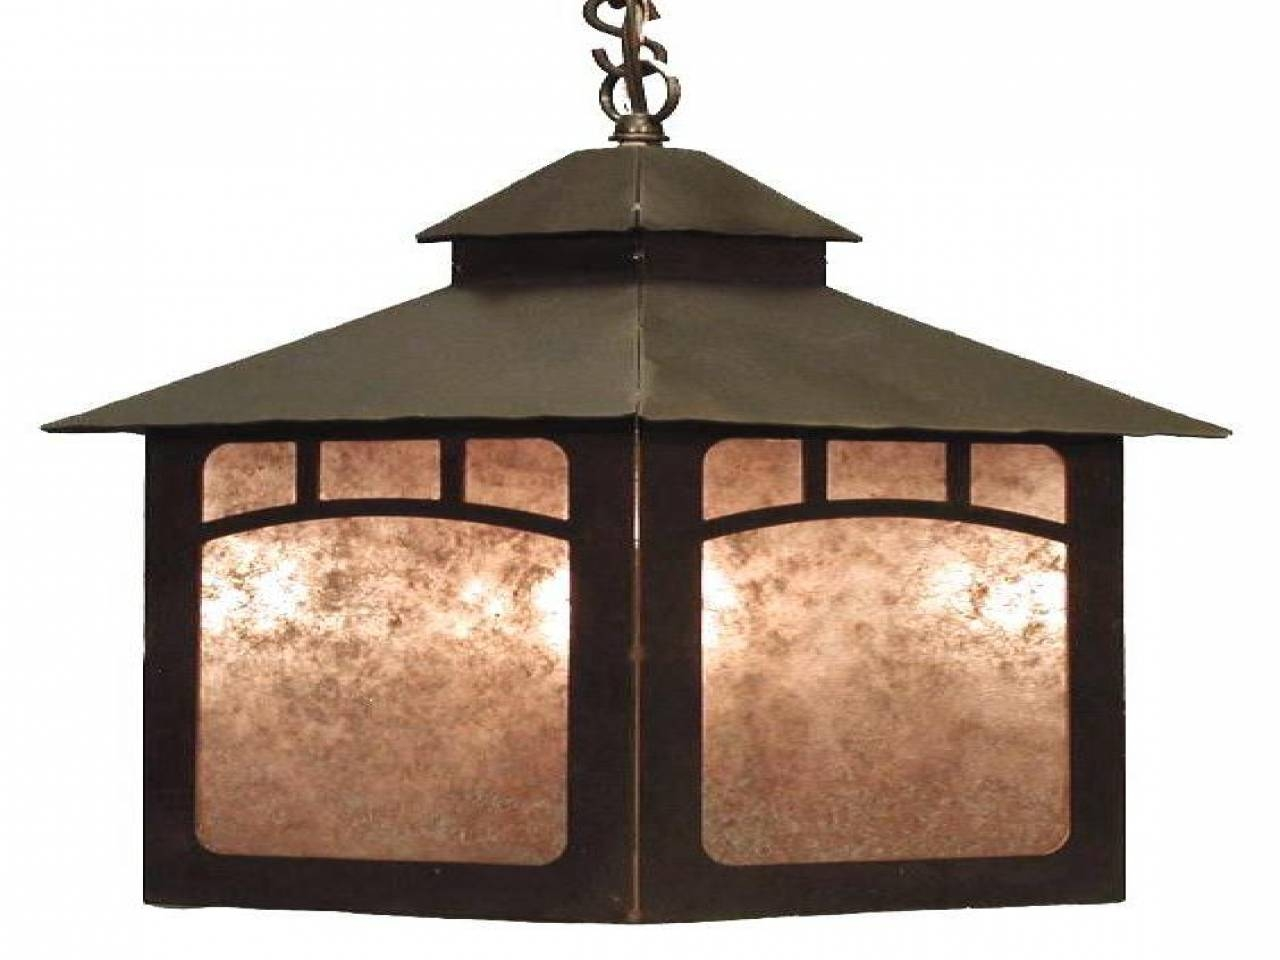 Mission Style Pendant Lights - Baby-Exit throughout Mission Style Pendant Lights (Image 11 of 15)